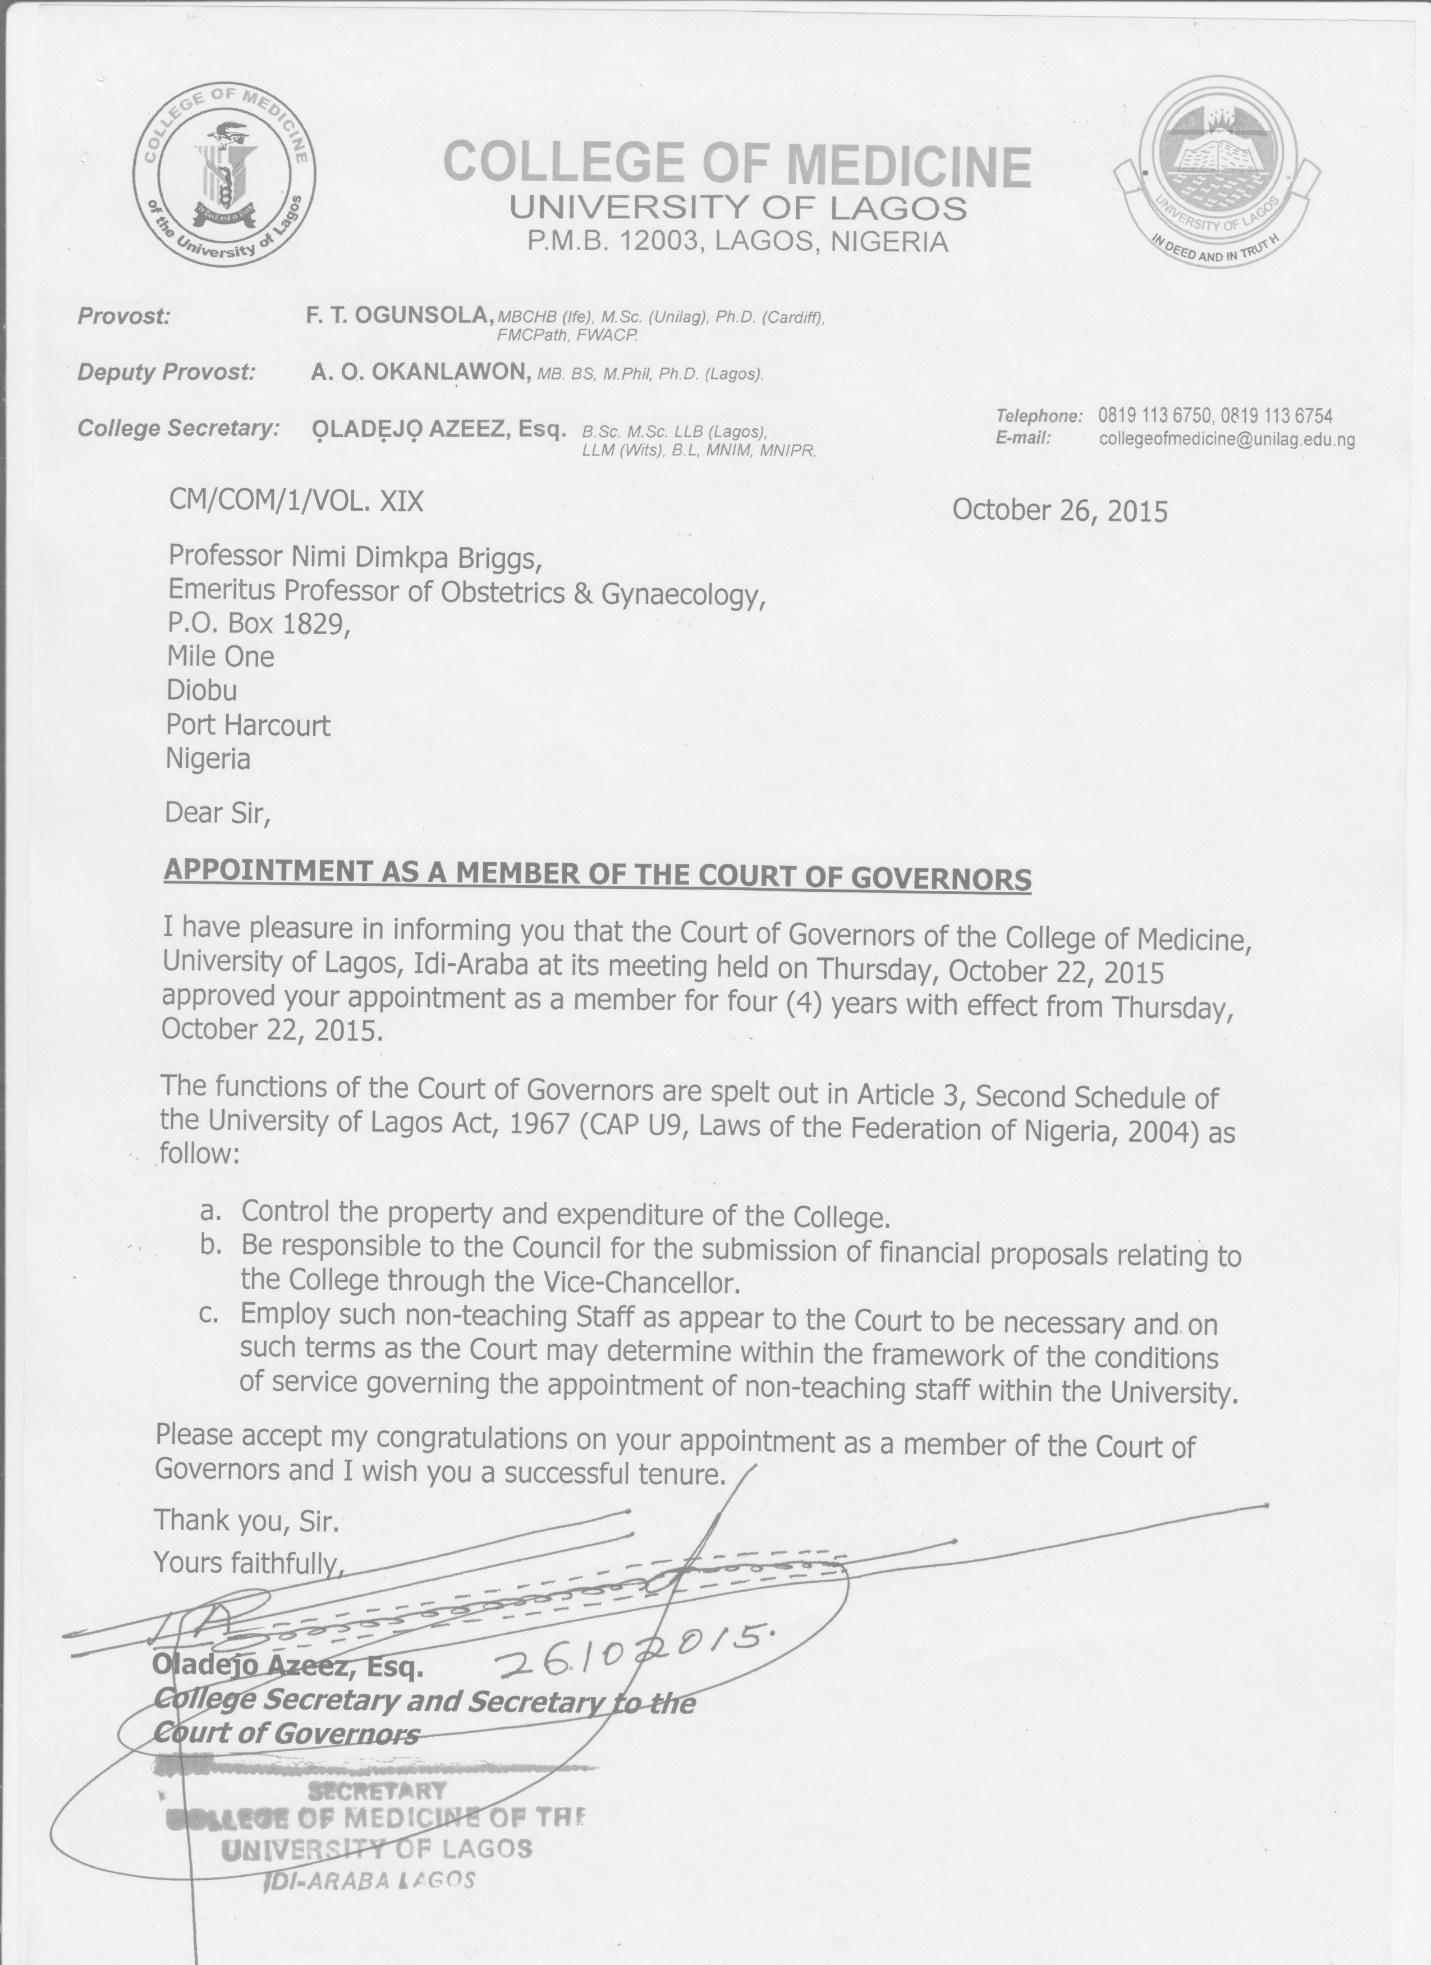 APPOINTMENT INTO THE COURT OF GOVERNORS, COLLEGE OF MEDICINE, UNIVERSITY OF LAGOS